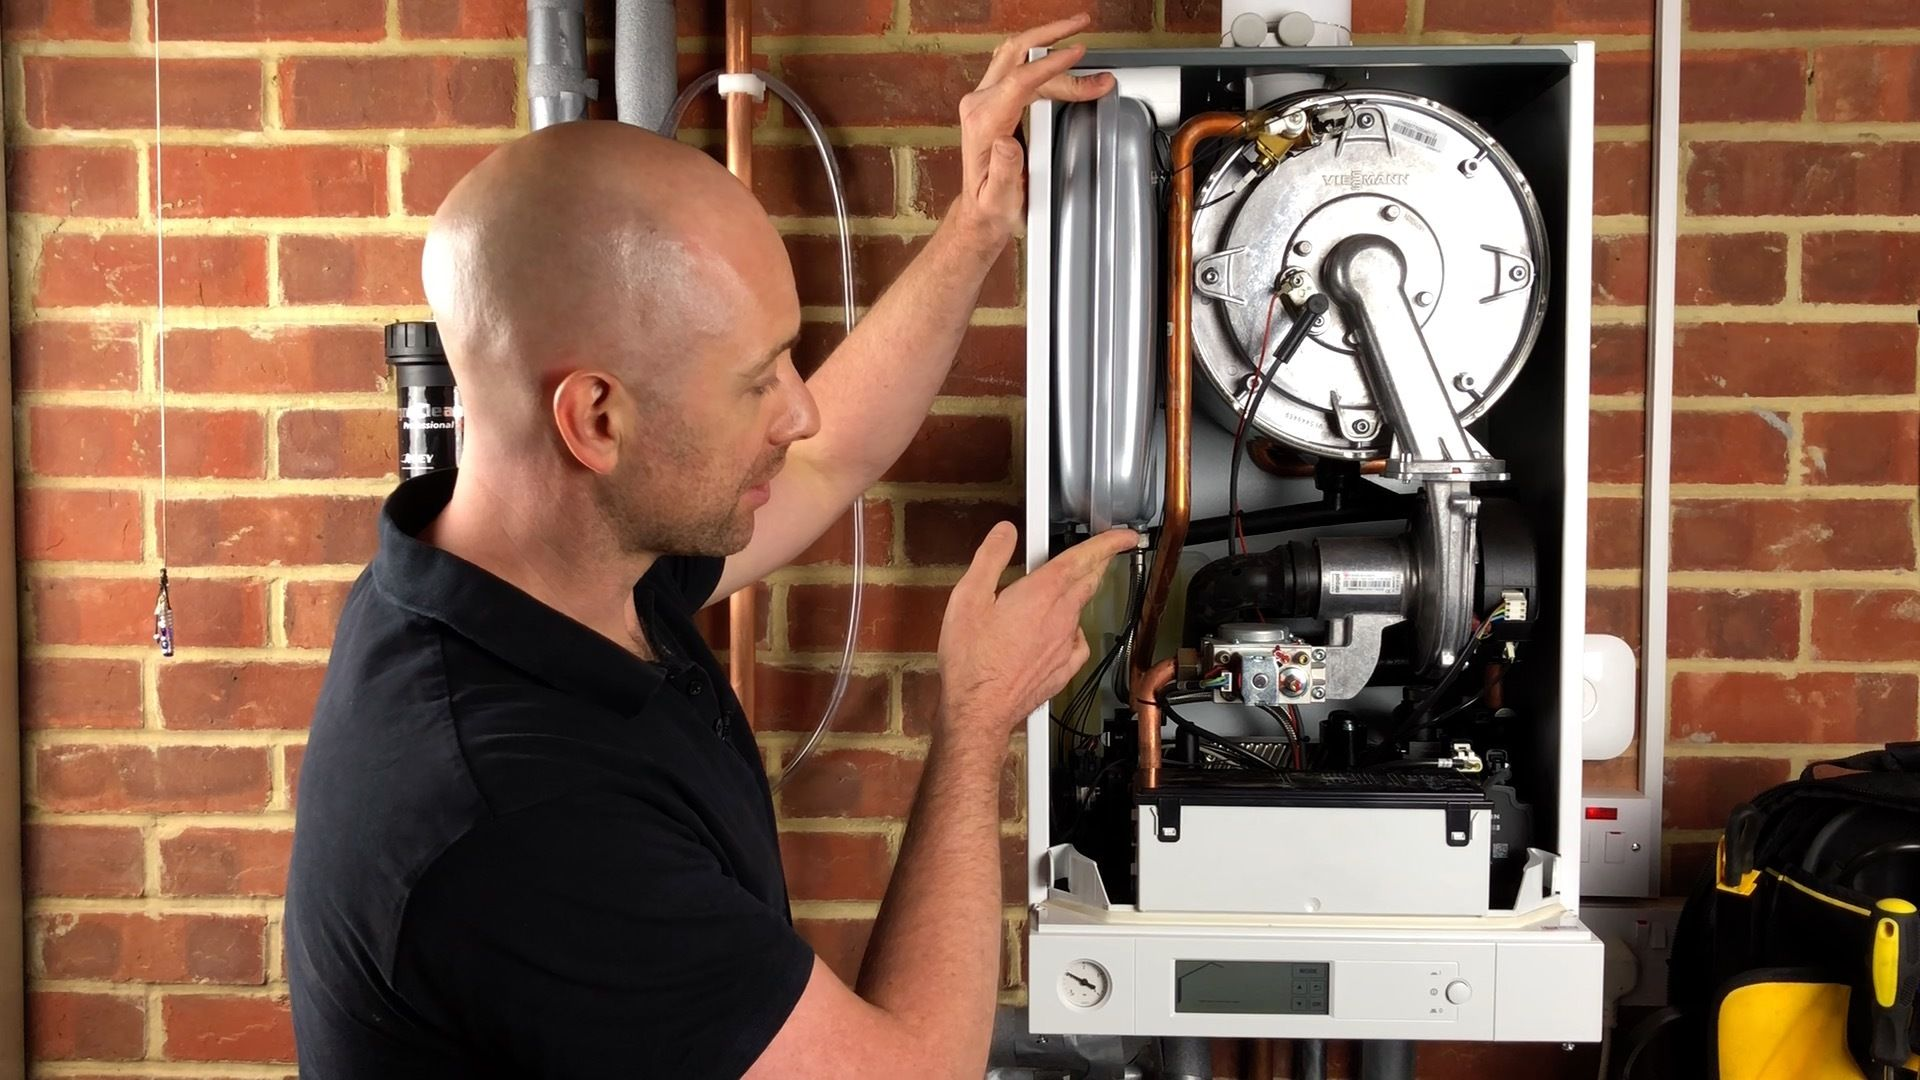 No Power To Your Boiler? These Checks Could Fix It - Thames